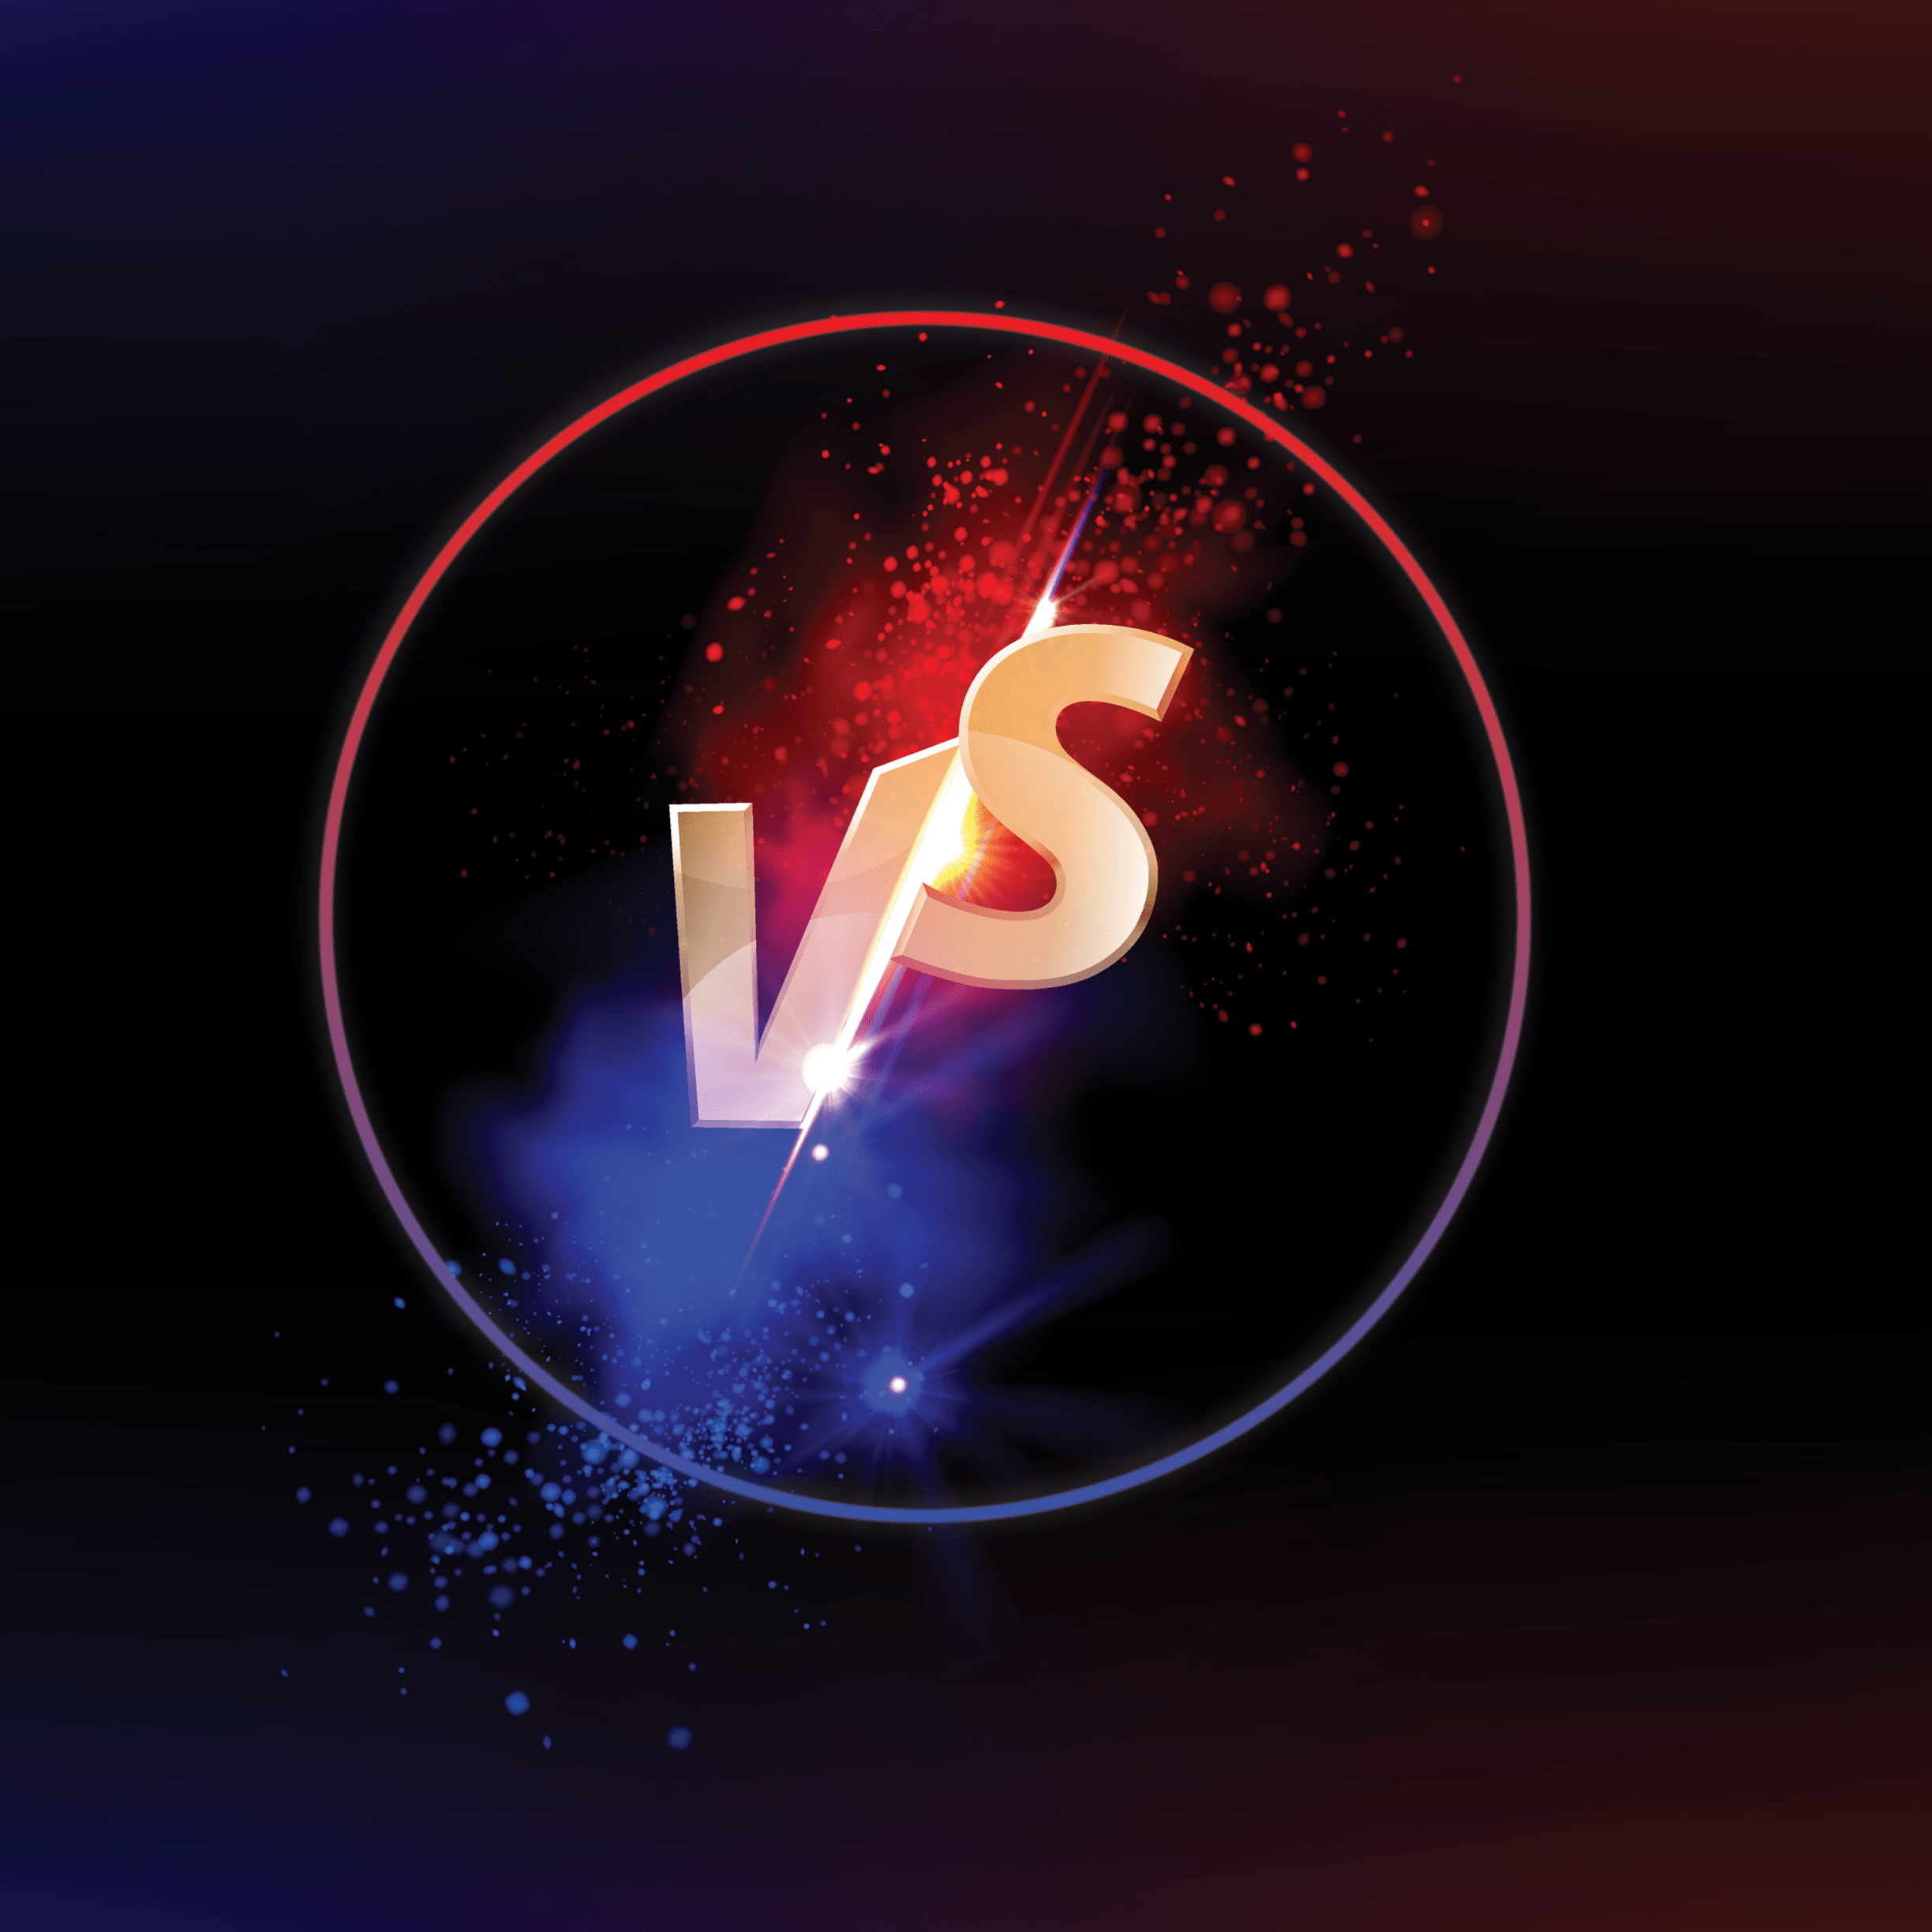 Versus logo for competition with dark background 2448 x 2448